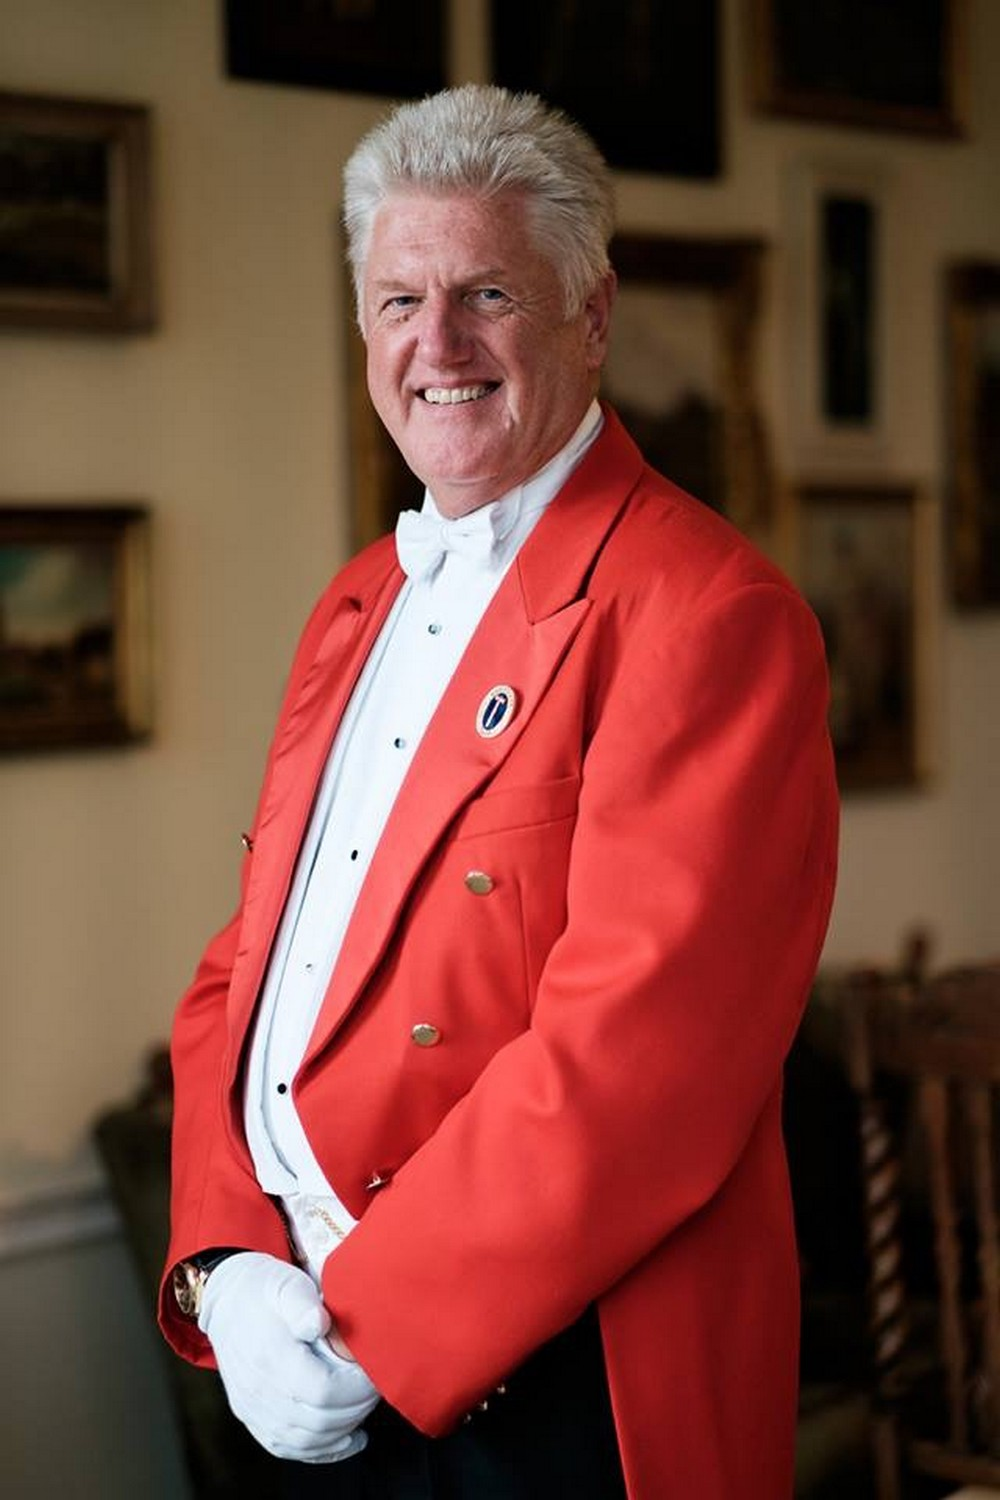 Promo The South West Toastmaster Toastmaster Devon